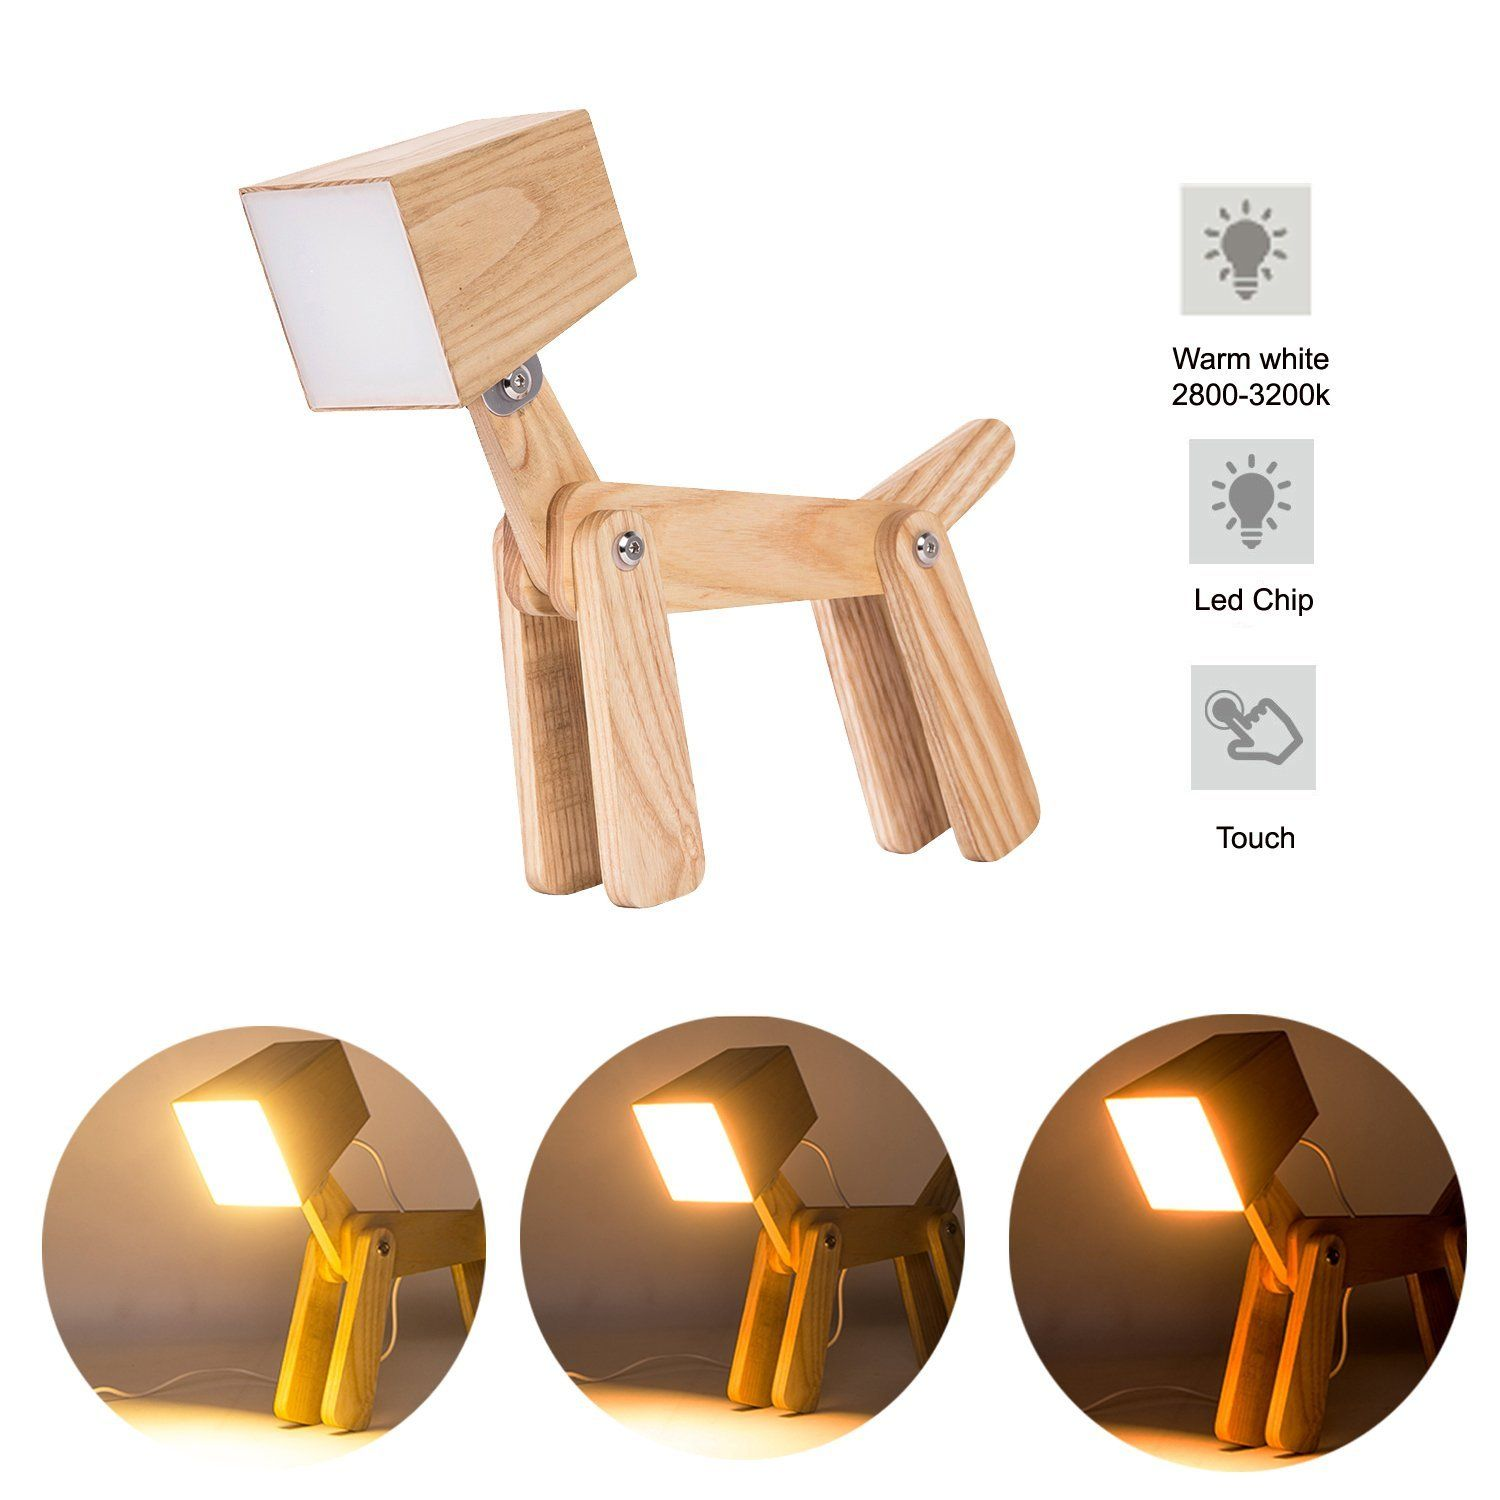 Hroome Cute Wooden Dog Design Adjustable Dimmable Bedside Table Lamp Touch Control 6w For